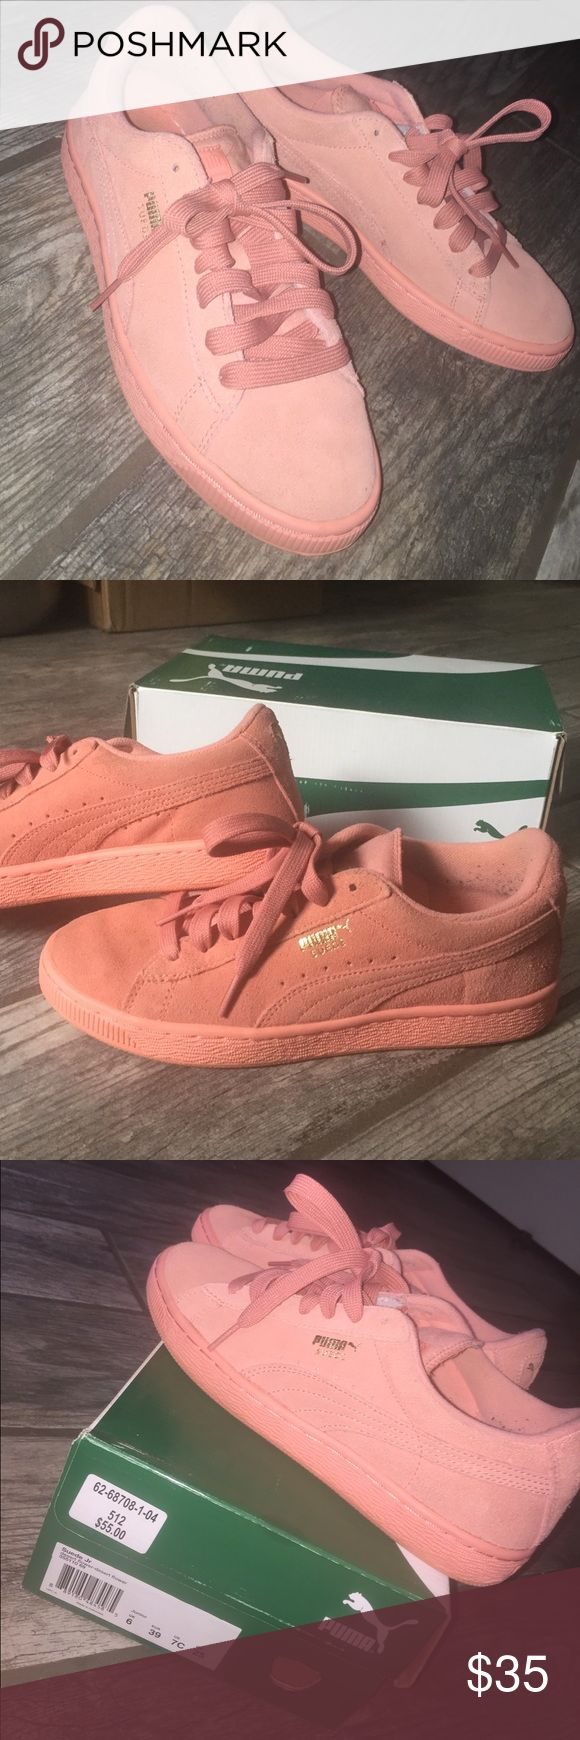 Puma Suede Classic Desert flower classic suede Pumas, junior size 7 US but fits women's size 8. Barely worn, great condition. Puma Shoes Sneakers